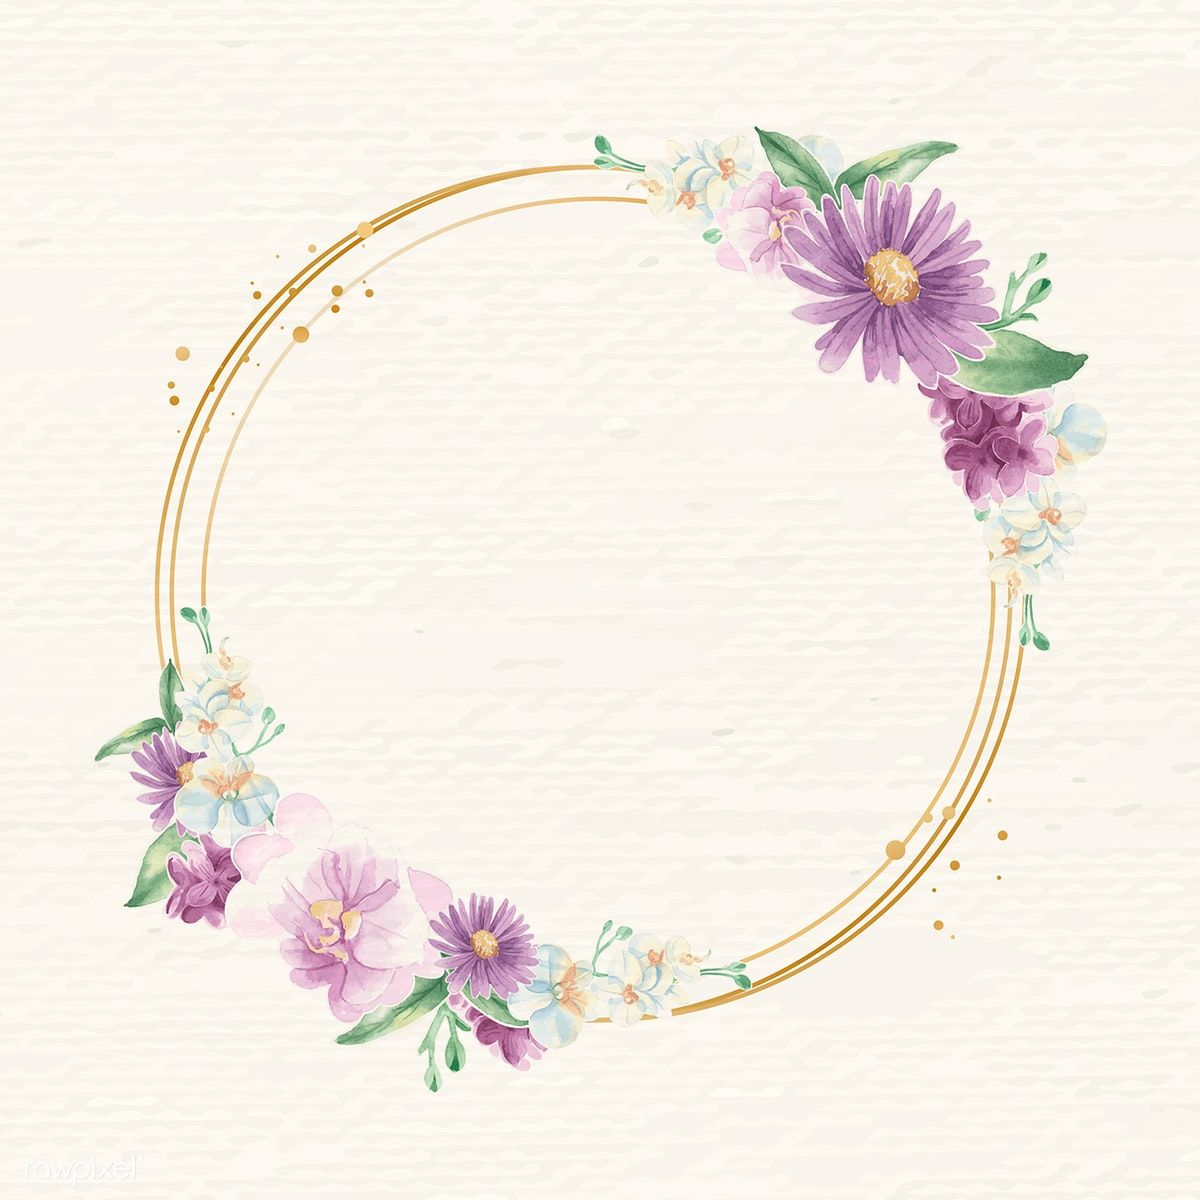 Round gold flower frame vector free image by rawpixel